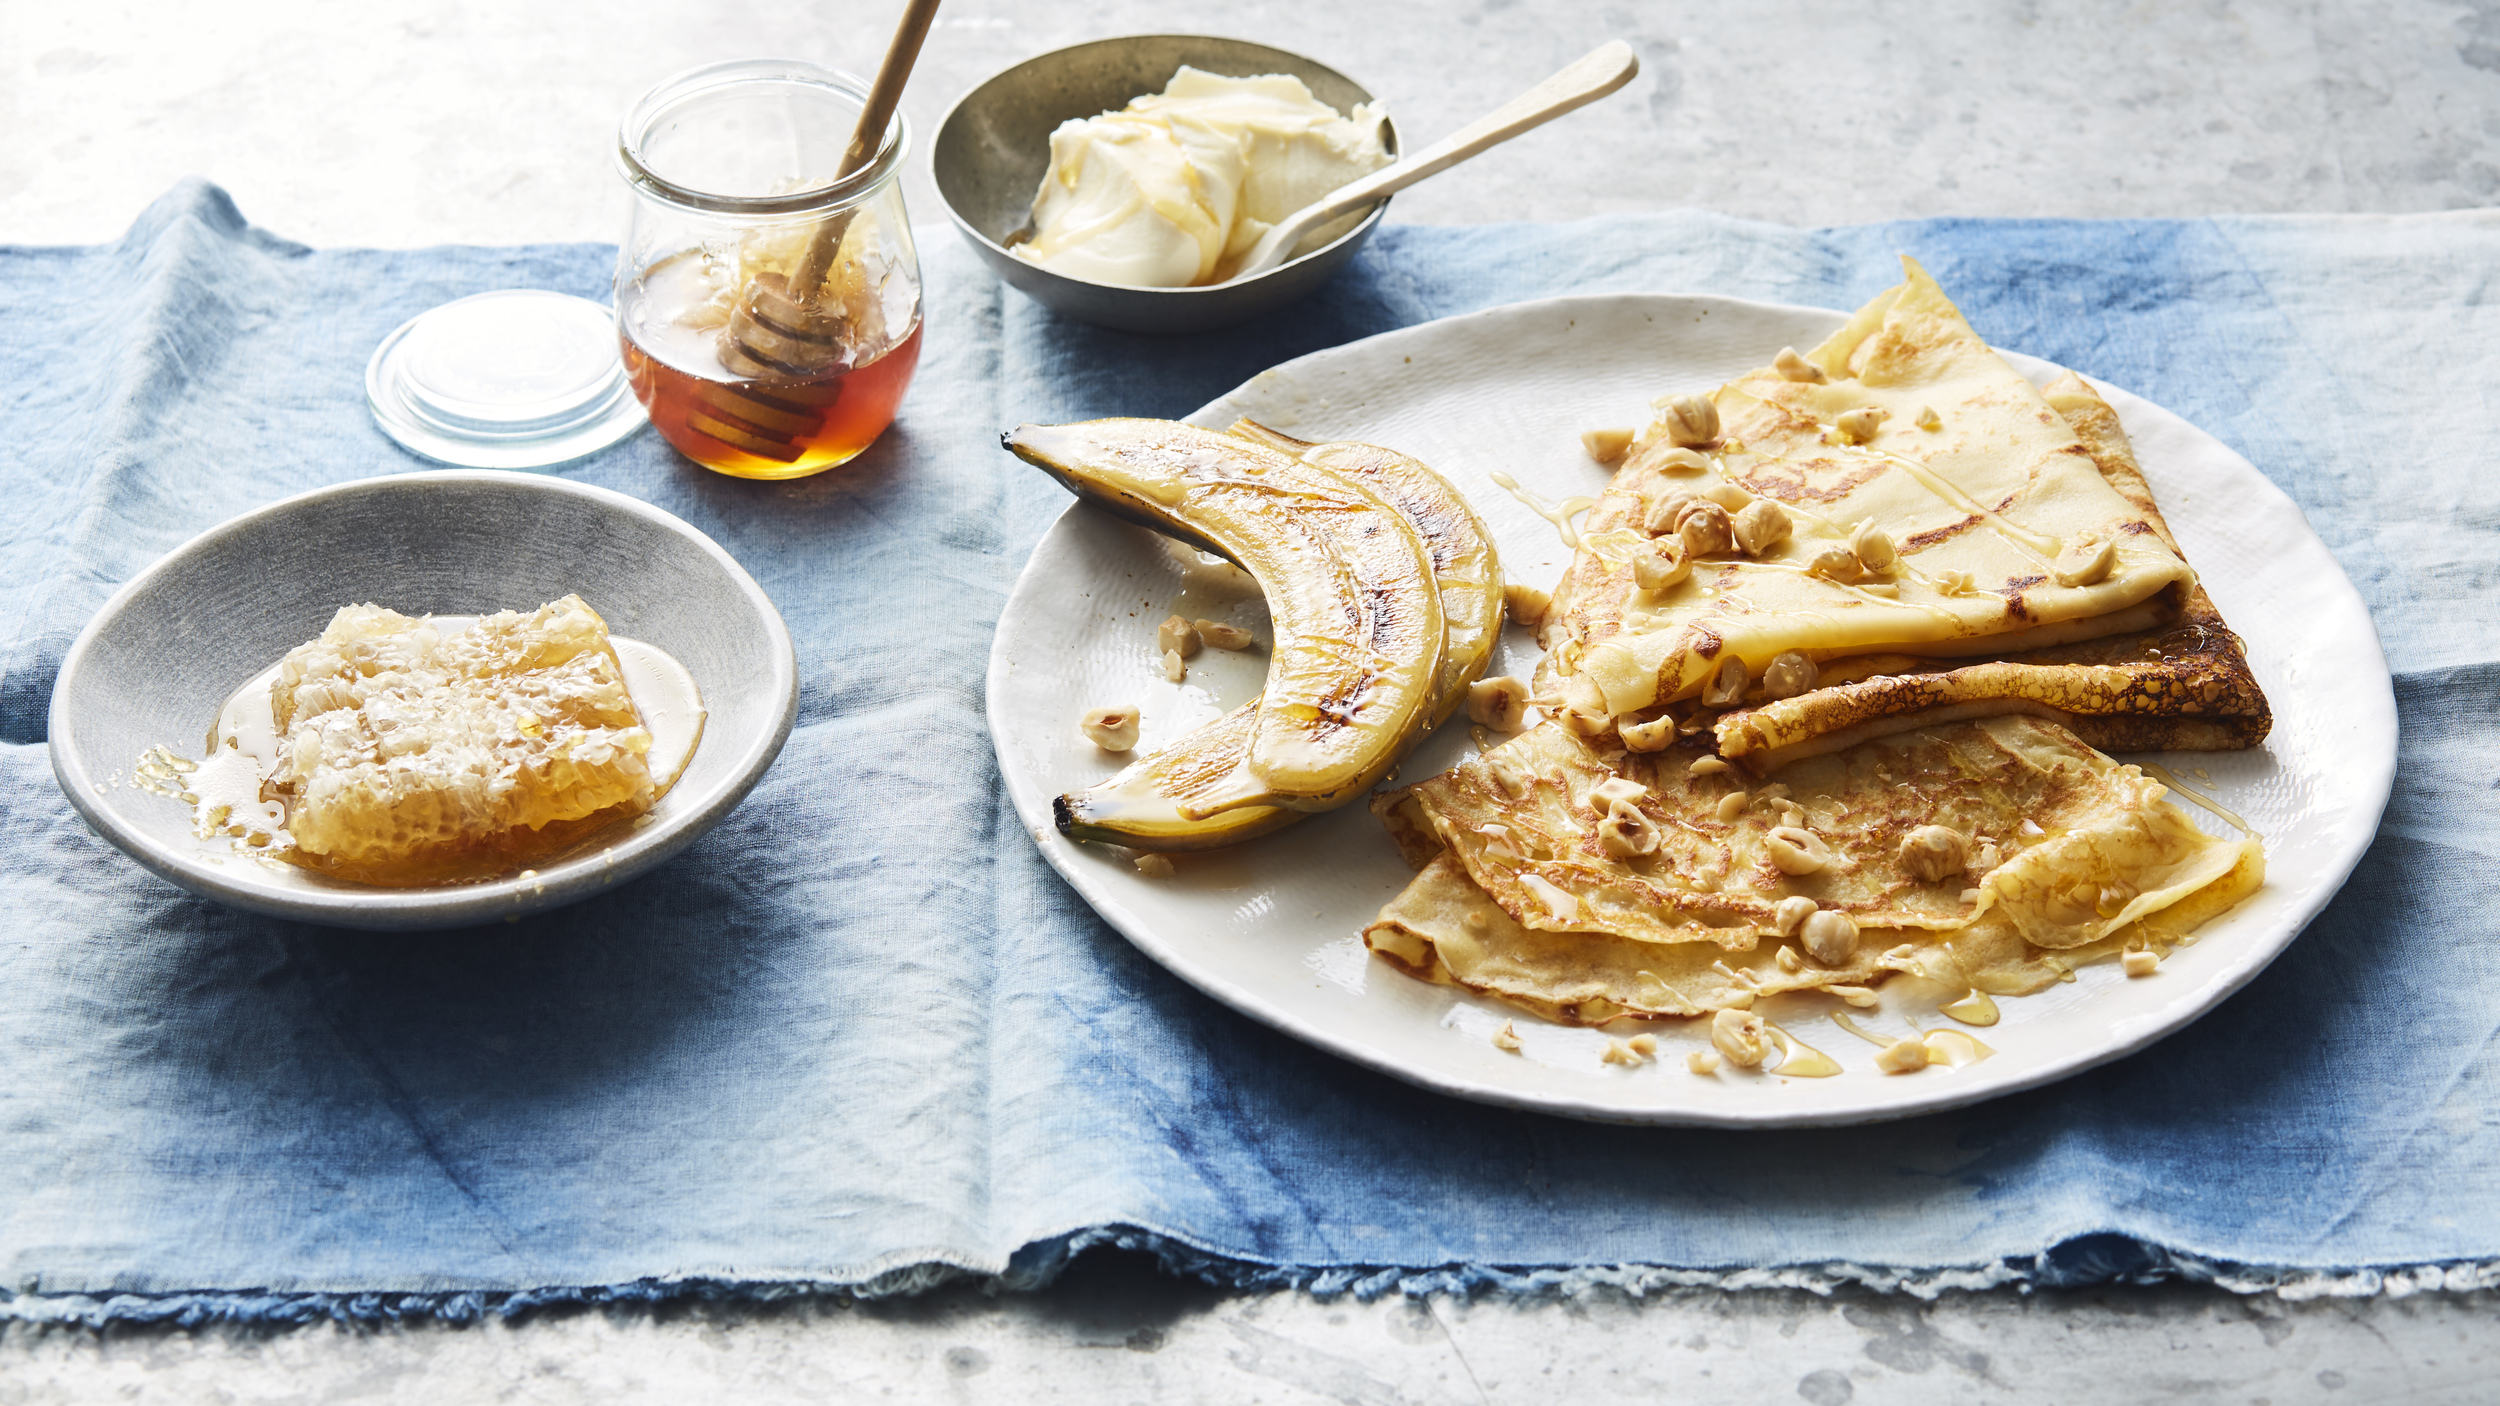 Honey crepes with caramelized banana and mascarpone,Photography: Brett Stevens, Art Direction: Anne Marie Cummins, Food & Props Styling: Marcus Hay for SMH, Inc